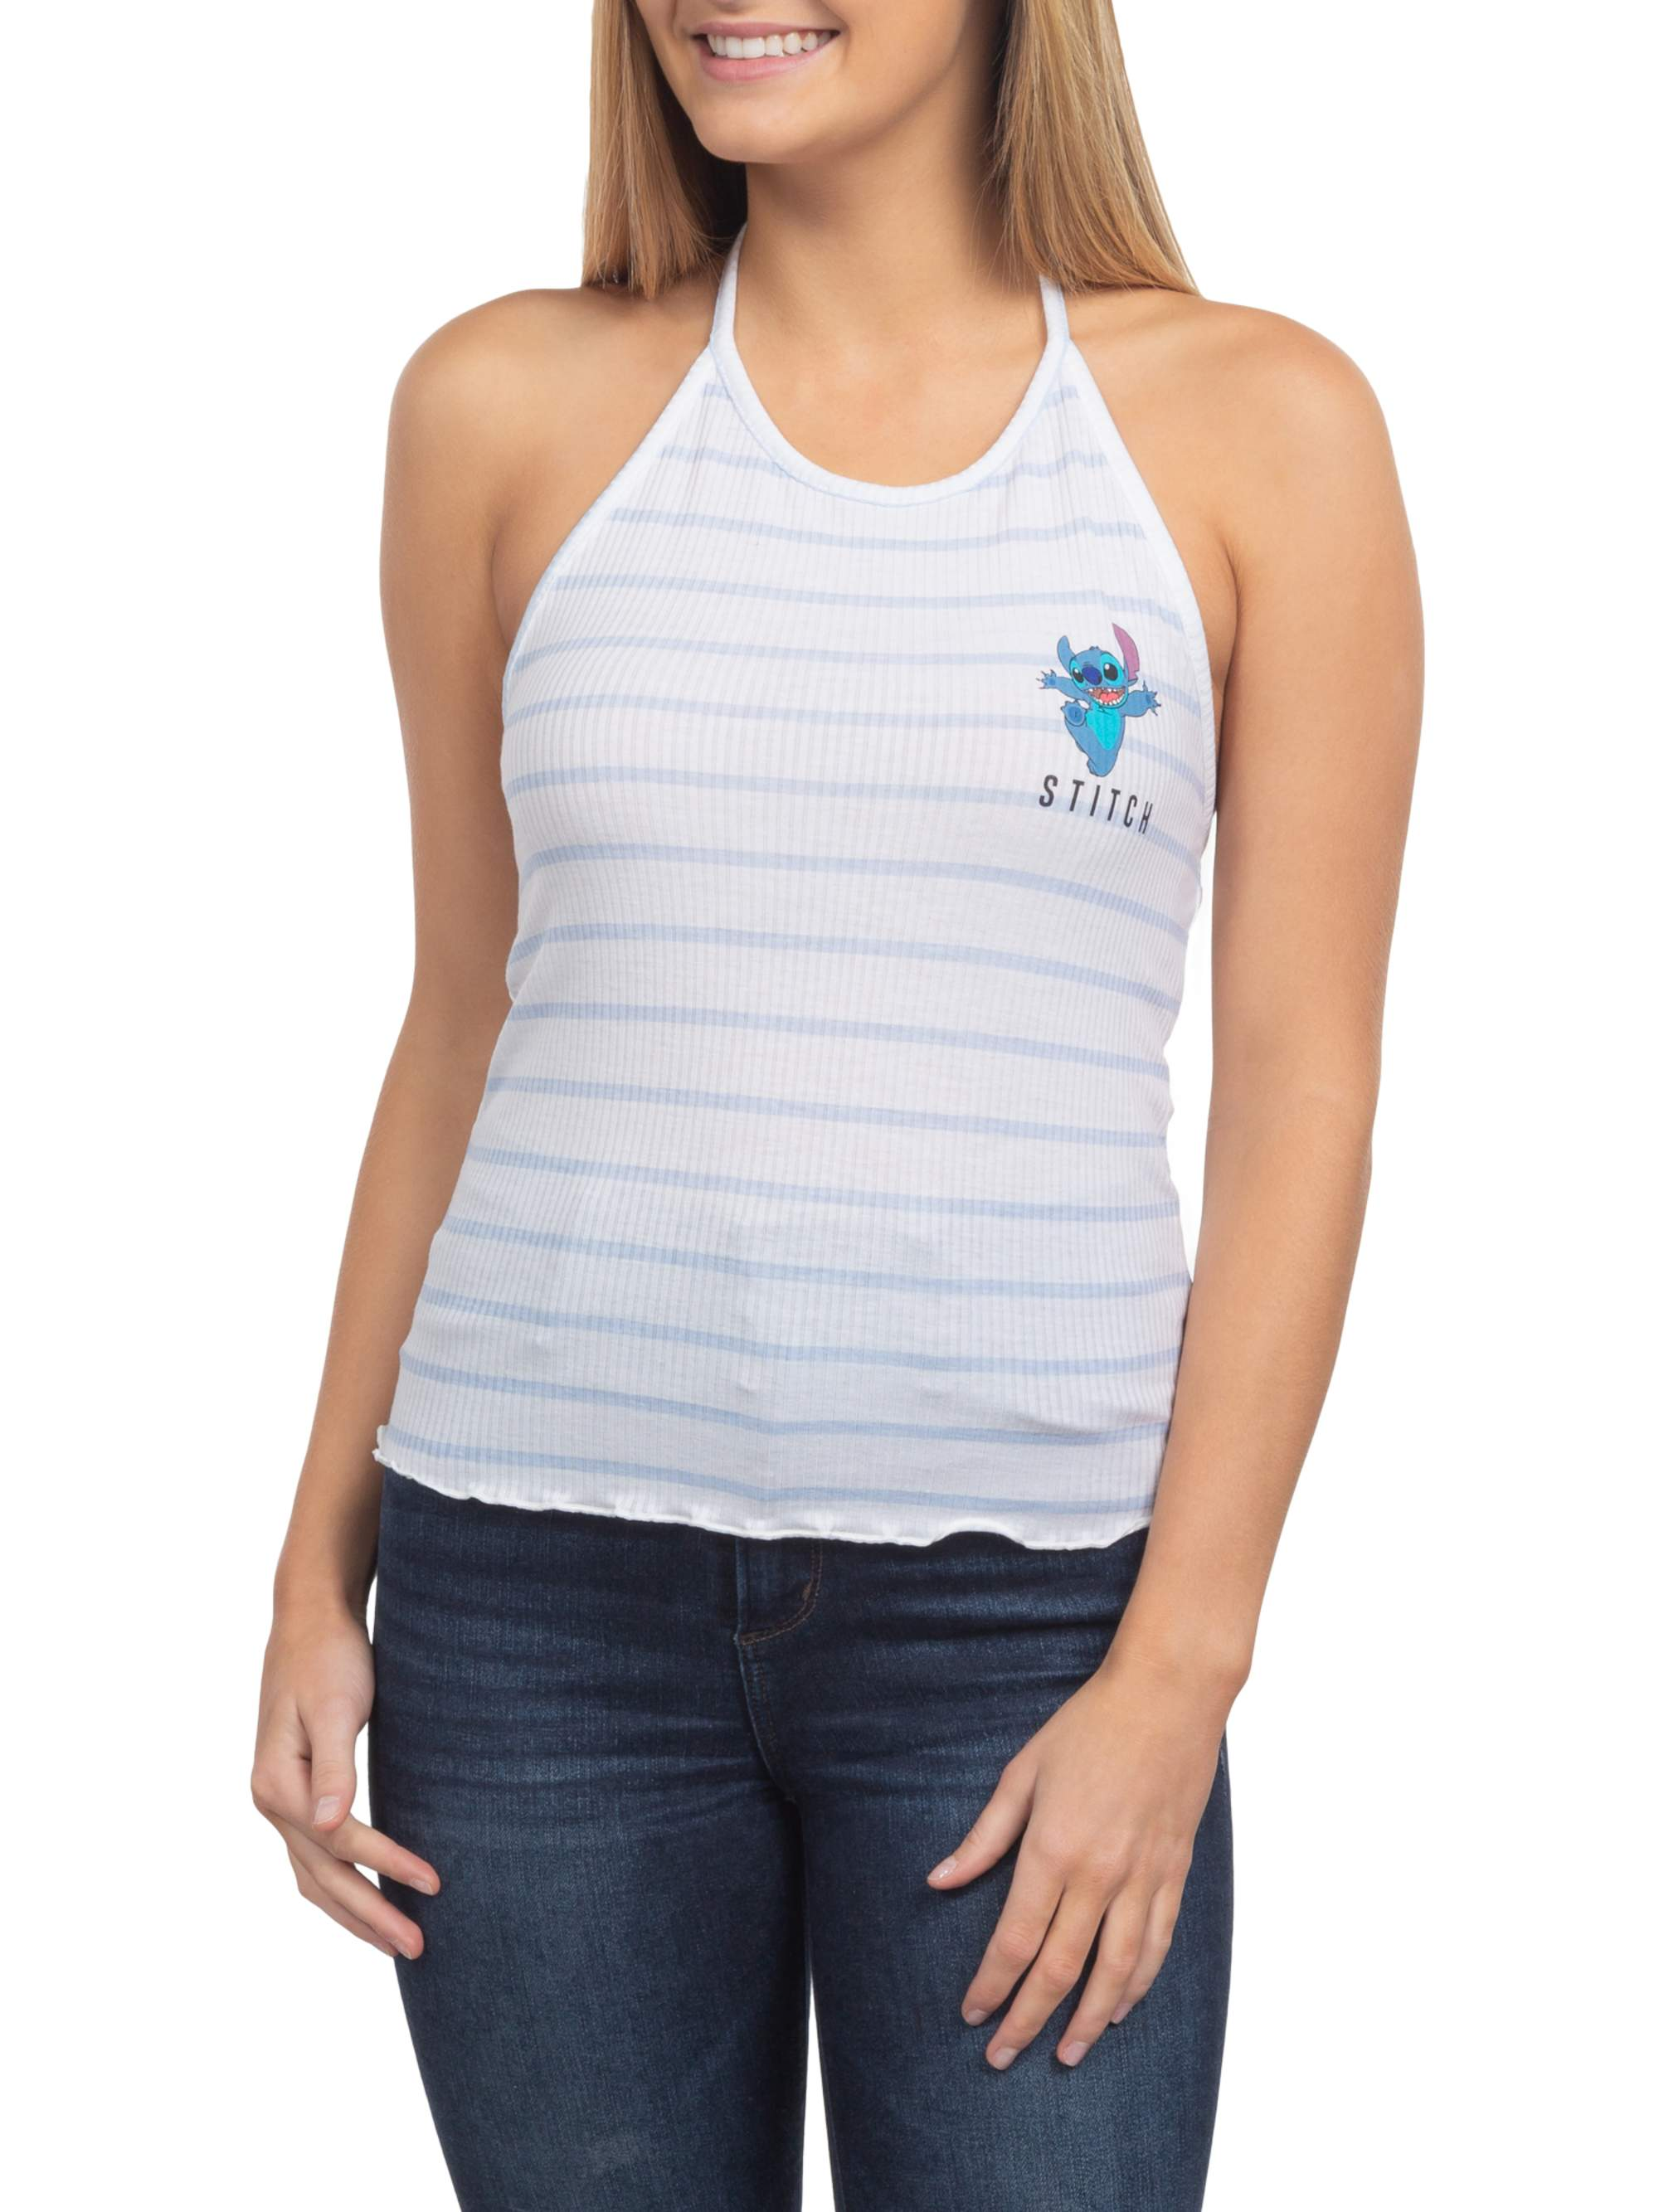 Stitch Juniors' Licensed Halter Graphic Tank